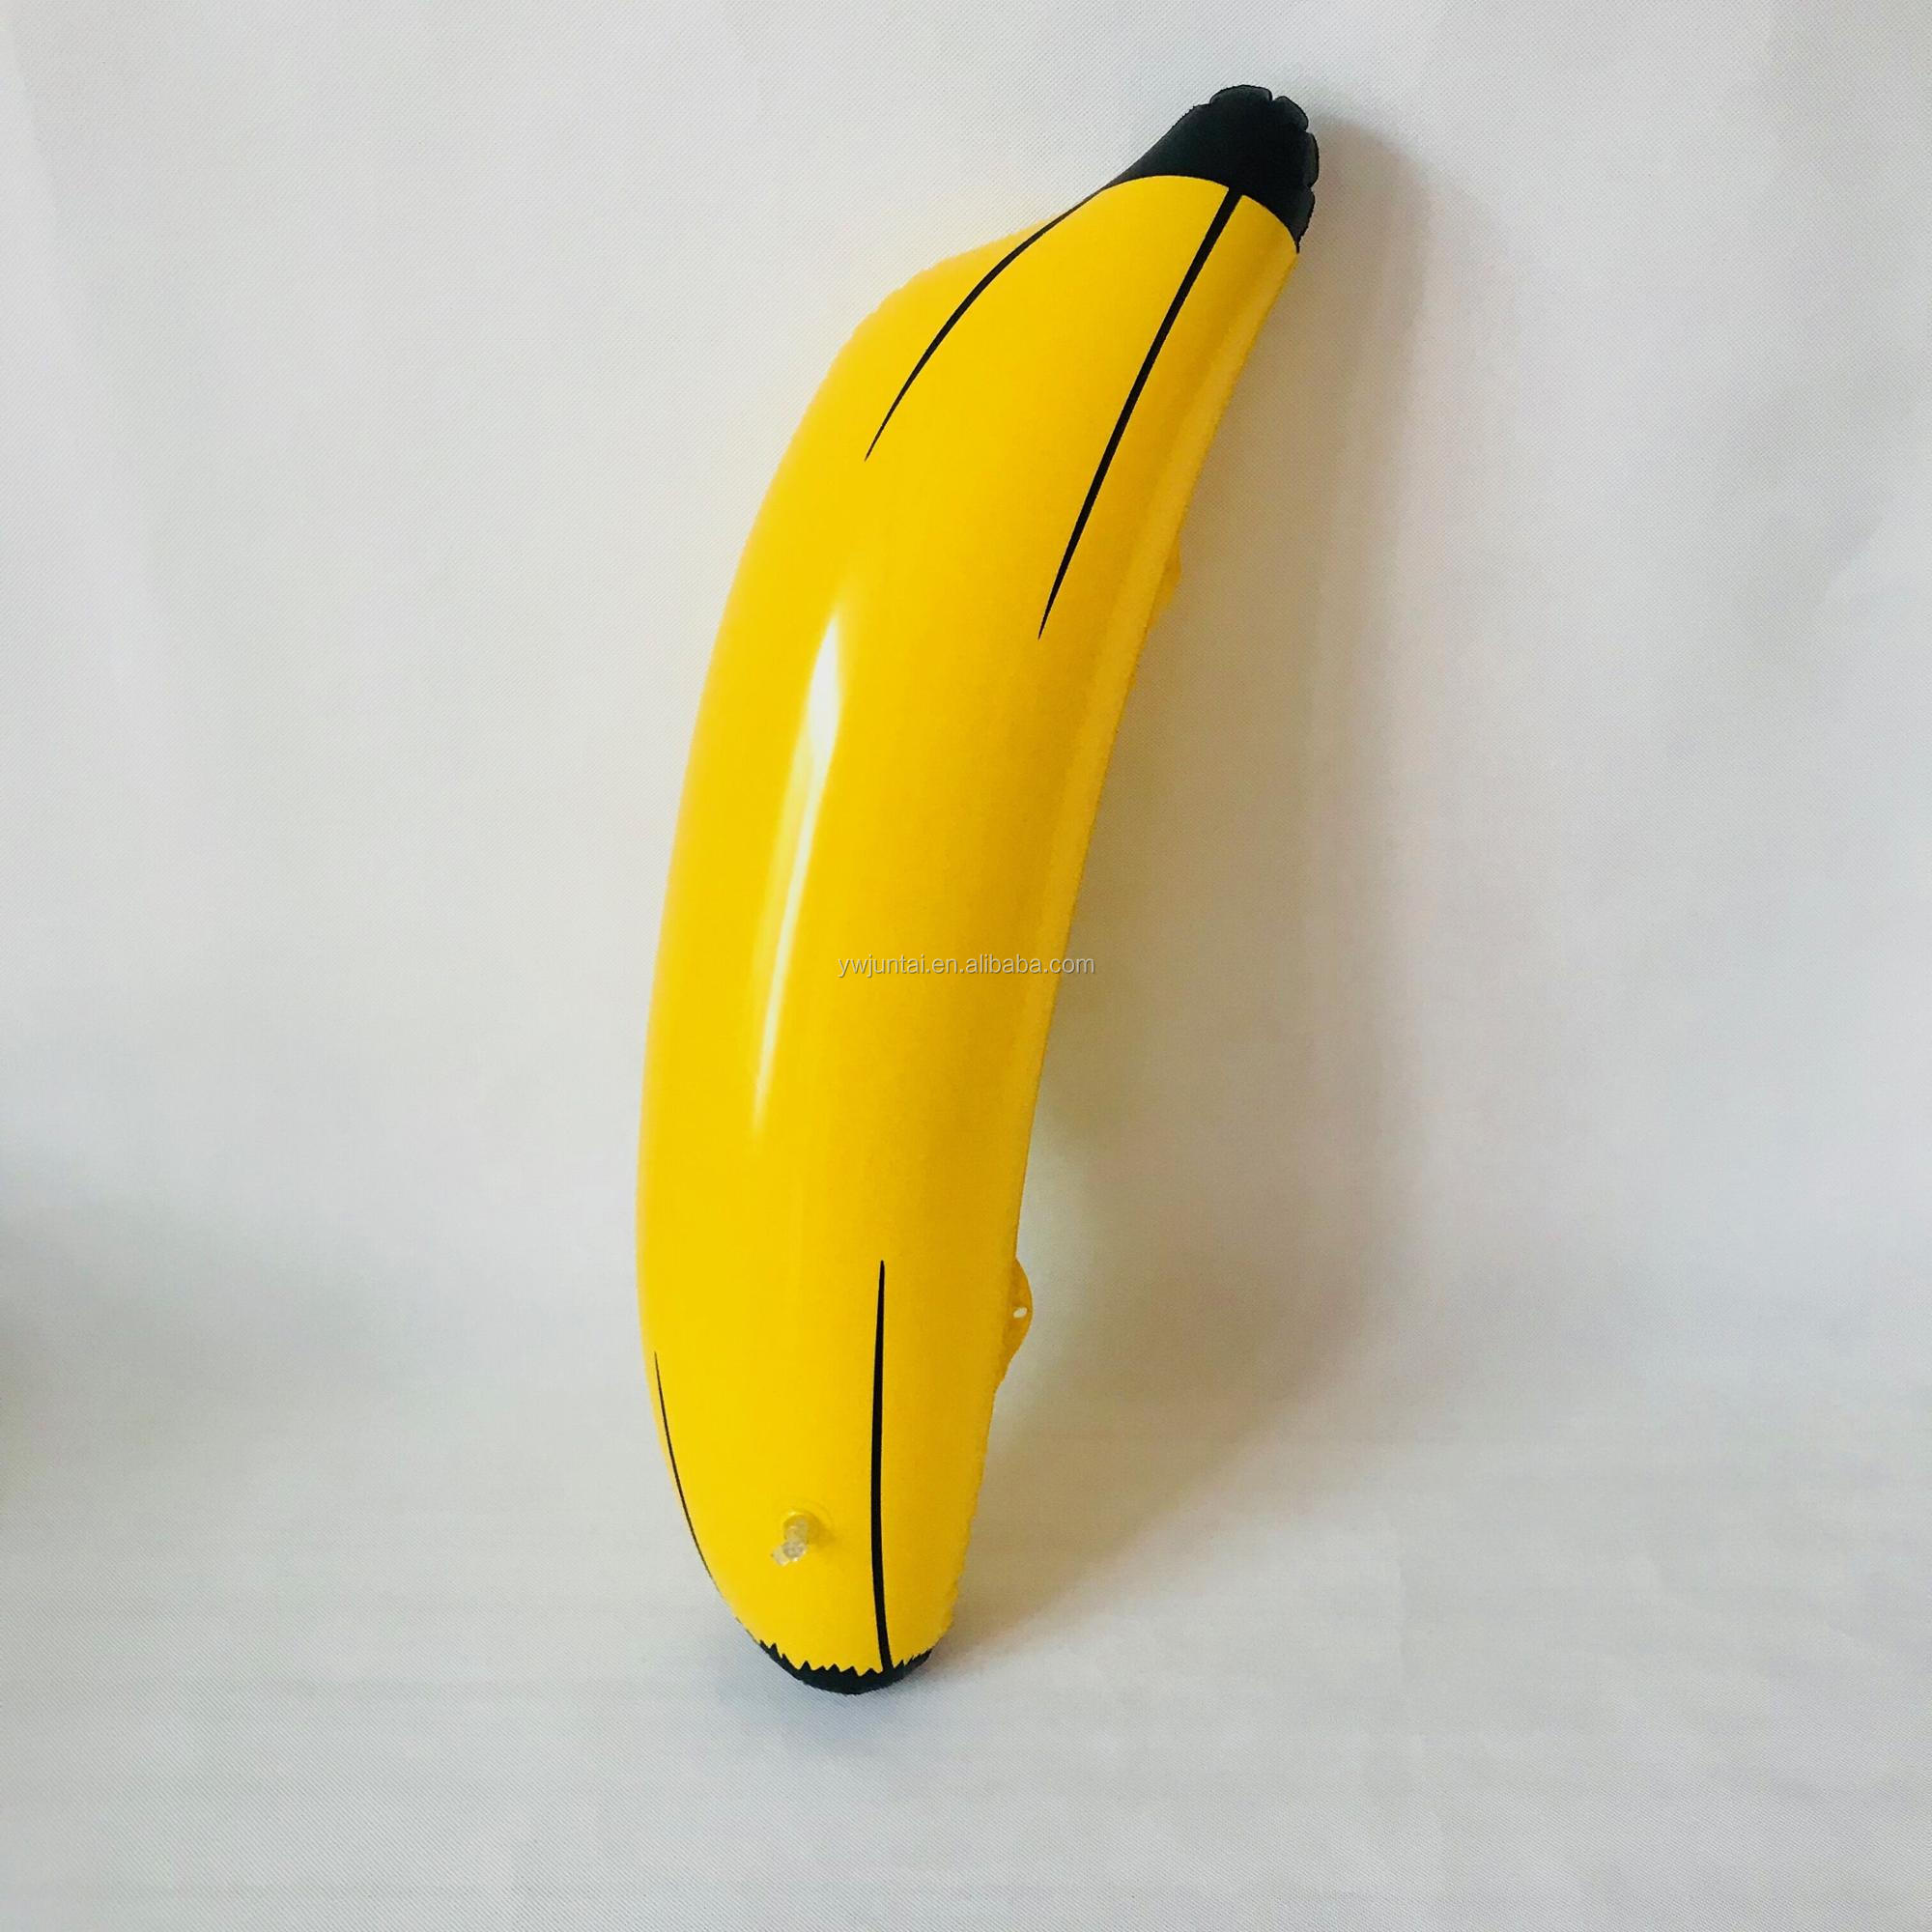 68CM High Quality Giant Promotion Banana <strong>Inflatable</strong> for sale